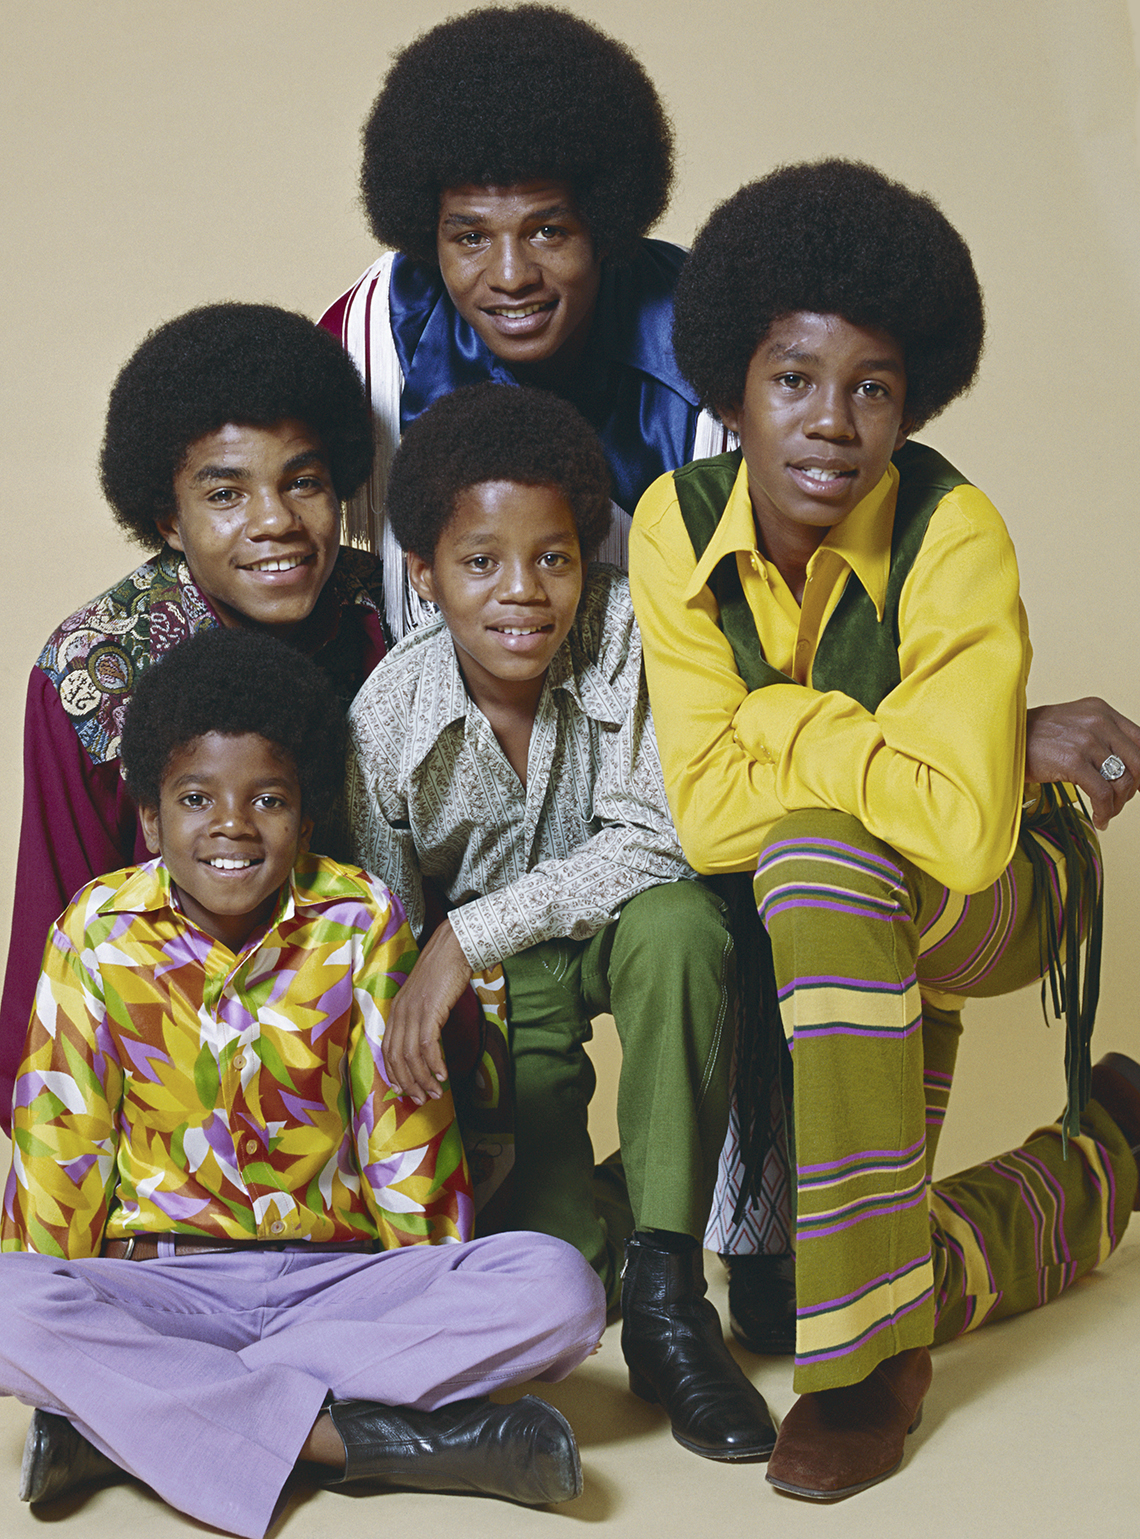 The Jackson Five pose for a photo.